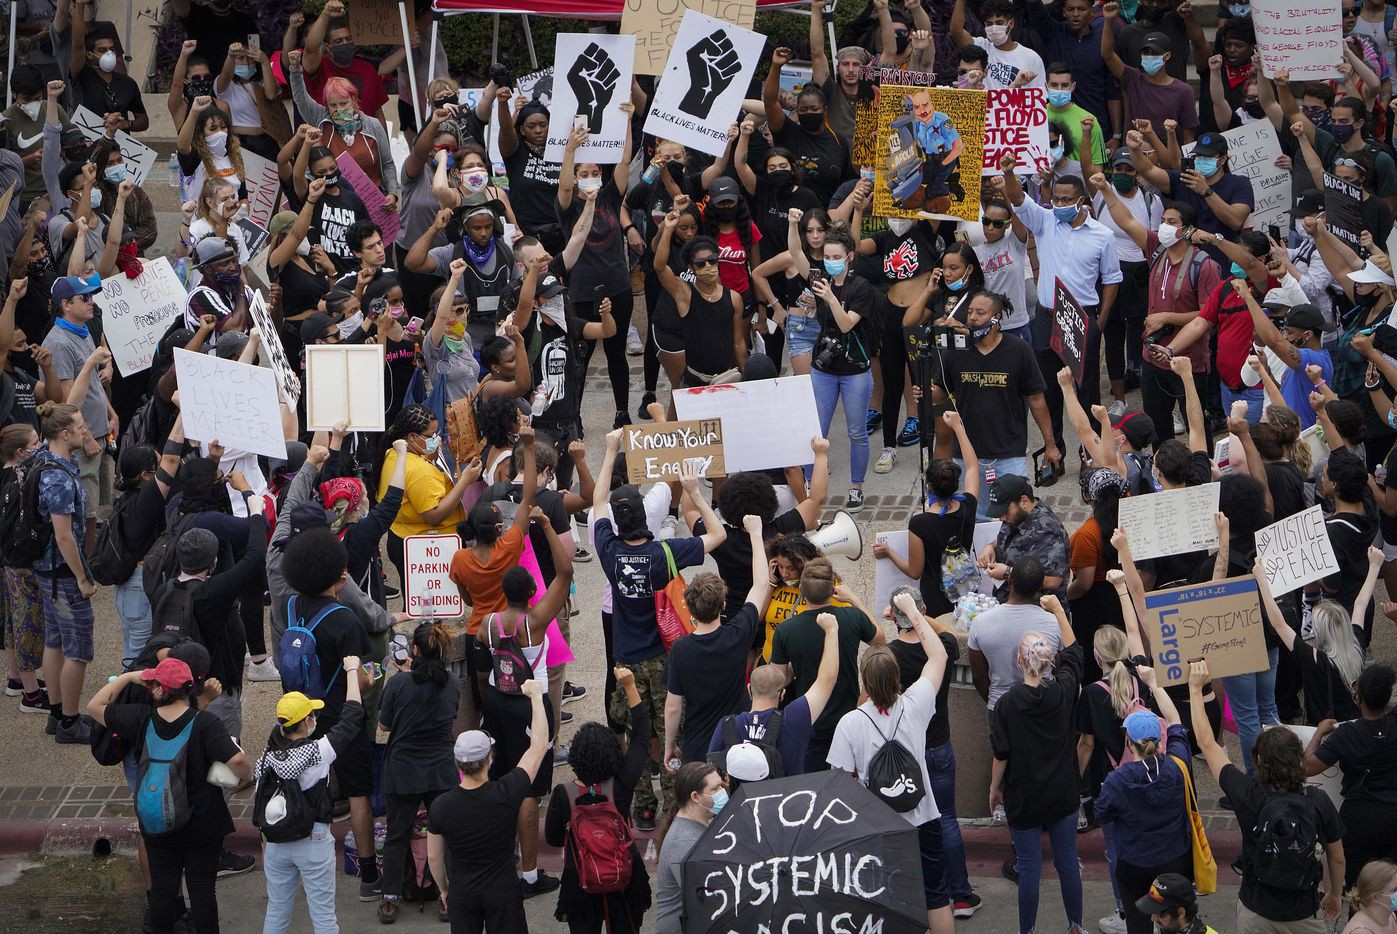 Protesters in Dallas, Texas demonstrating against police violence and racial injustice.